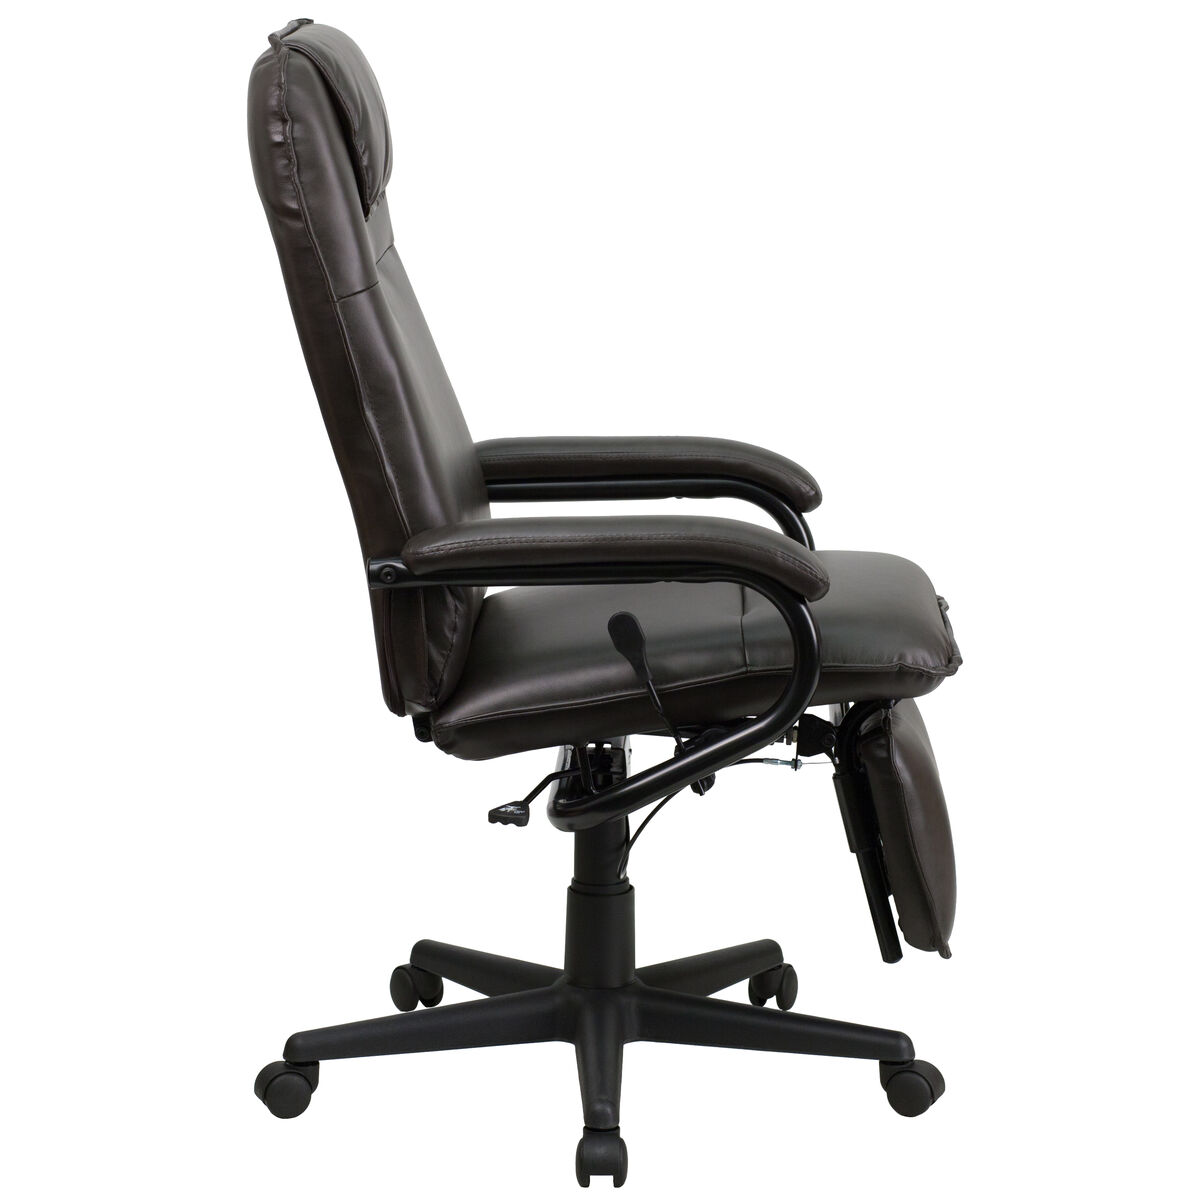 with gaming hullrgamingracingcomputerofficechair office hullr executive lumbar quilted backrest detachable chair diamond ergonomic high back design headrest reclining recliner computer racing product